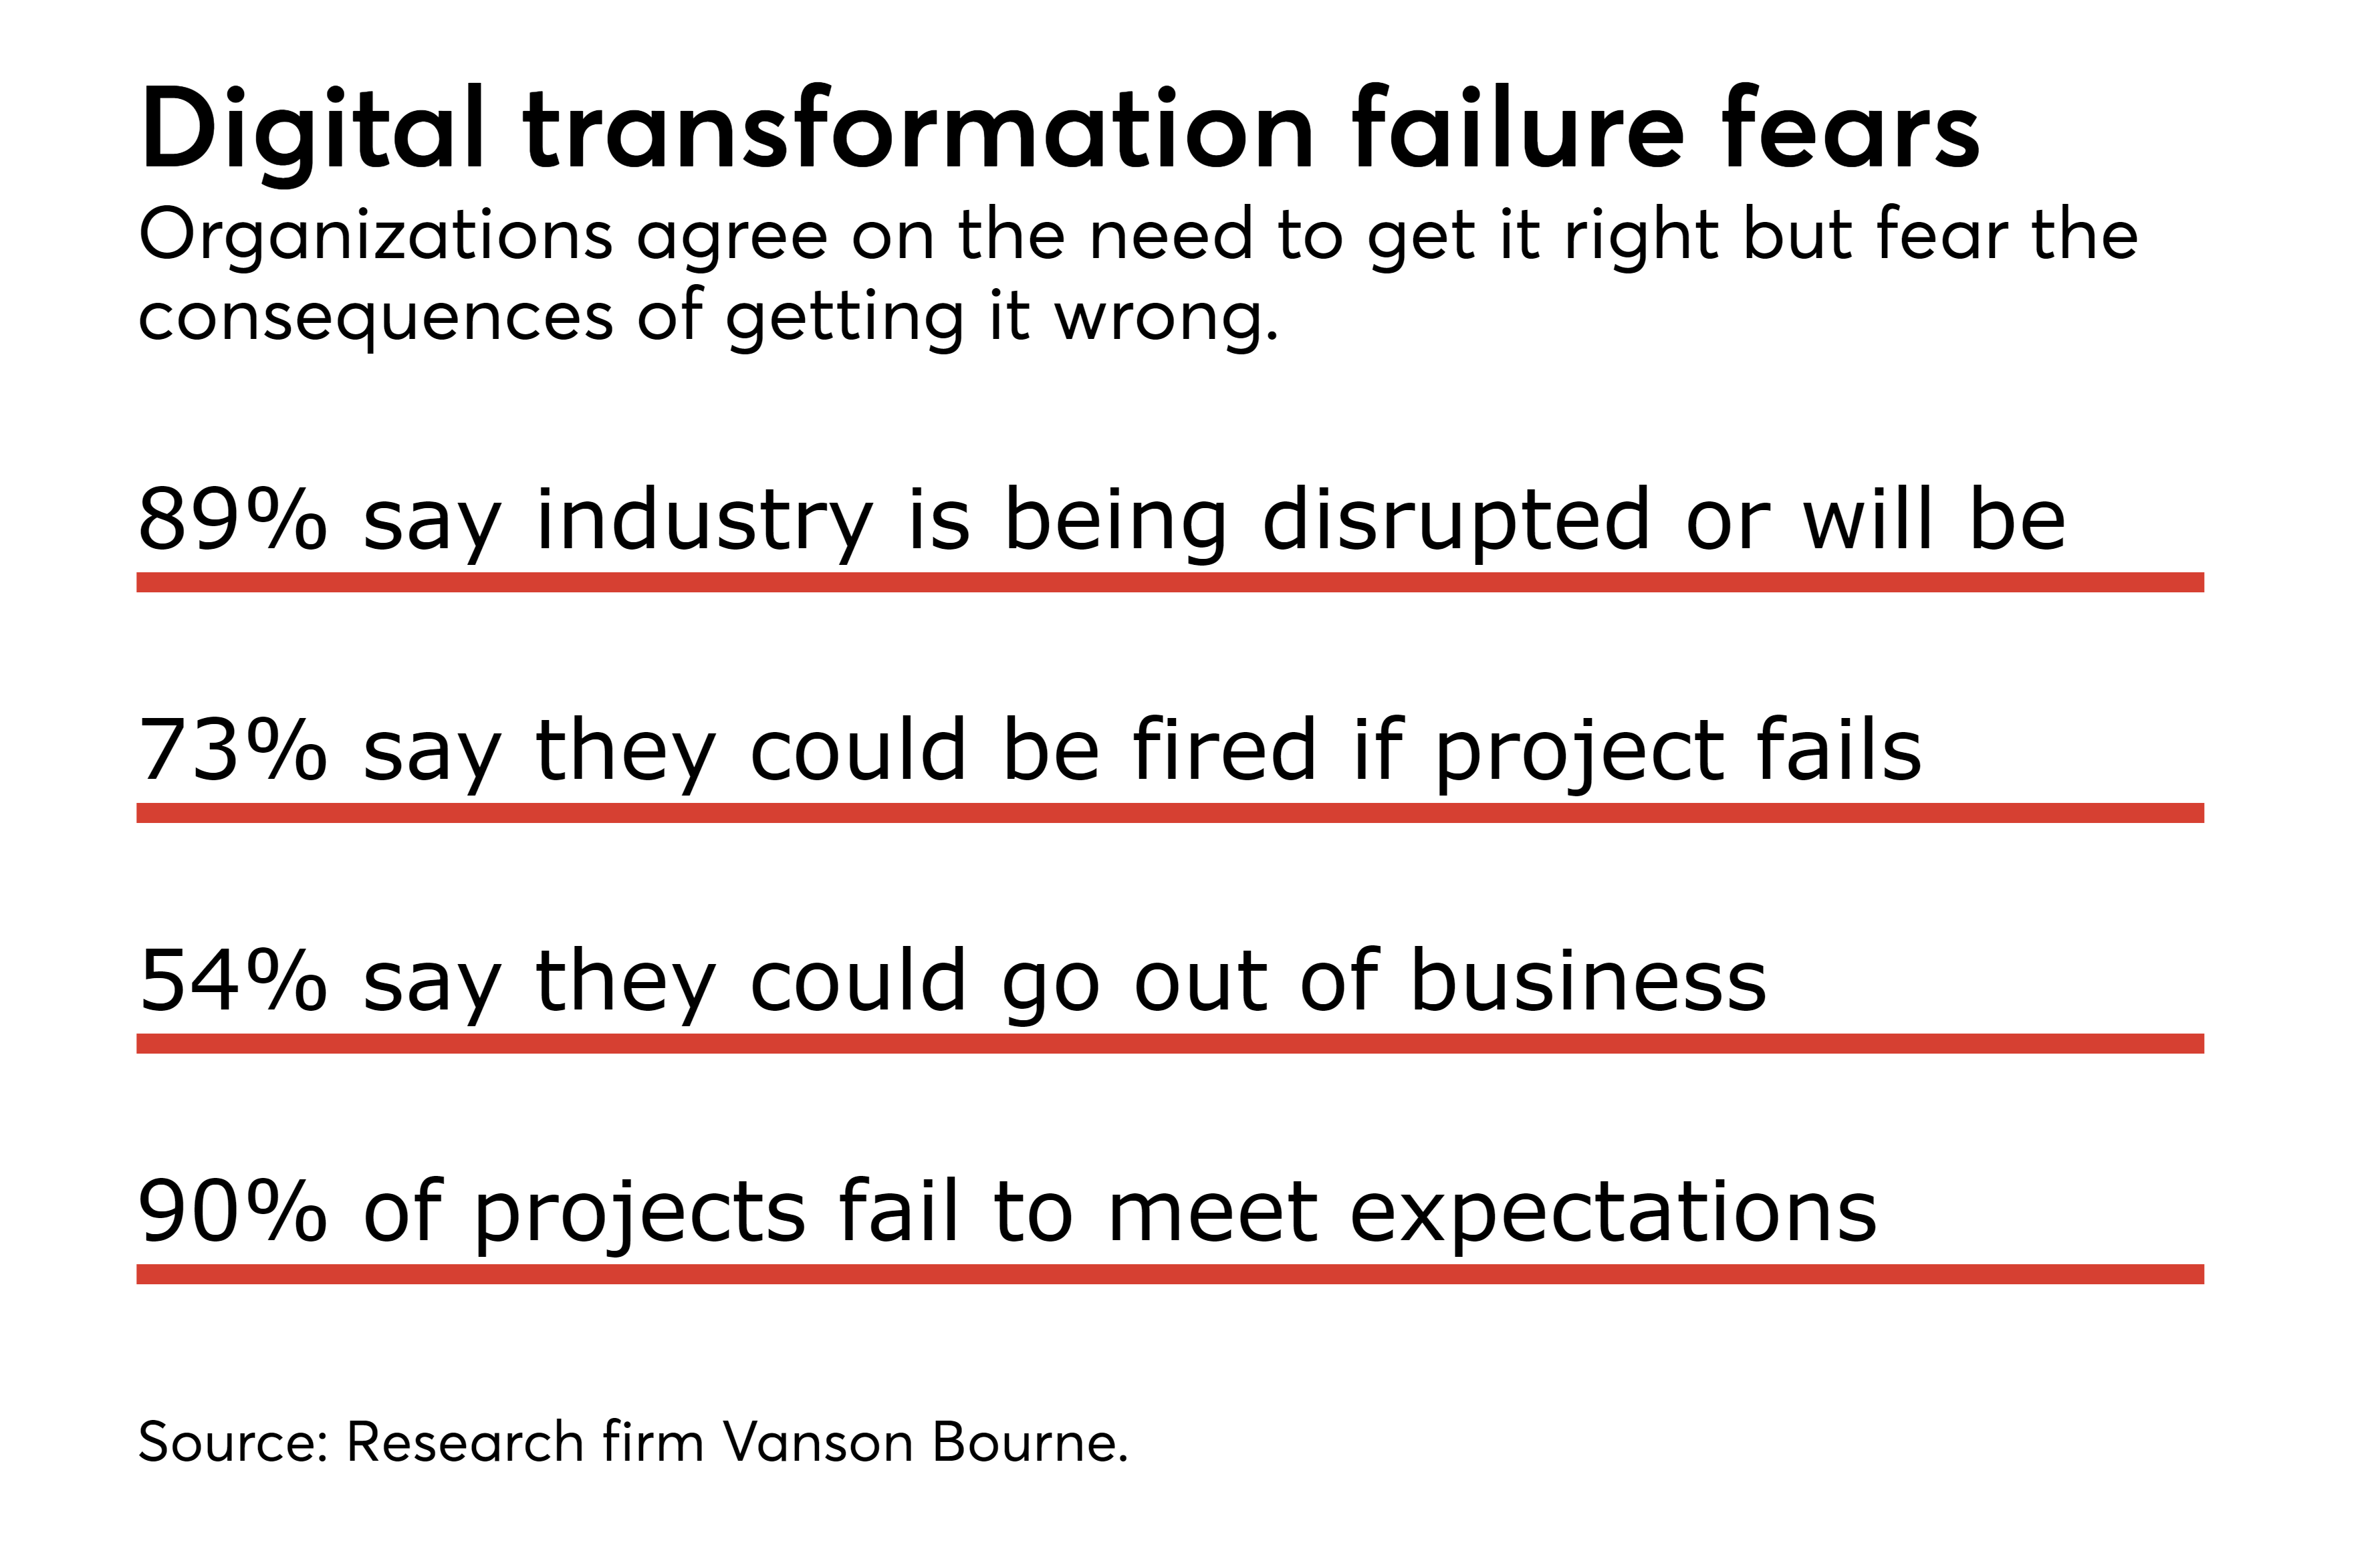 https://assets.sourcemedia.com/4b/a9/2c1e58a541669f6dc02522f58b6f/digital-disruption-fears.png